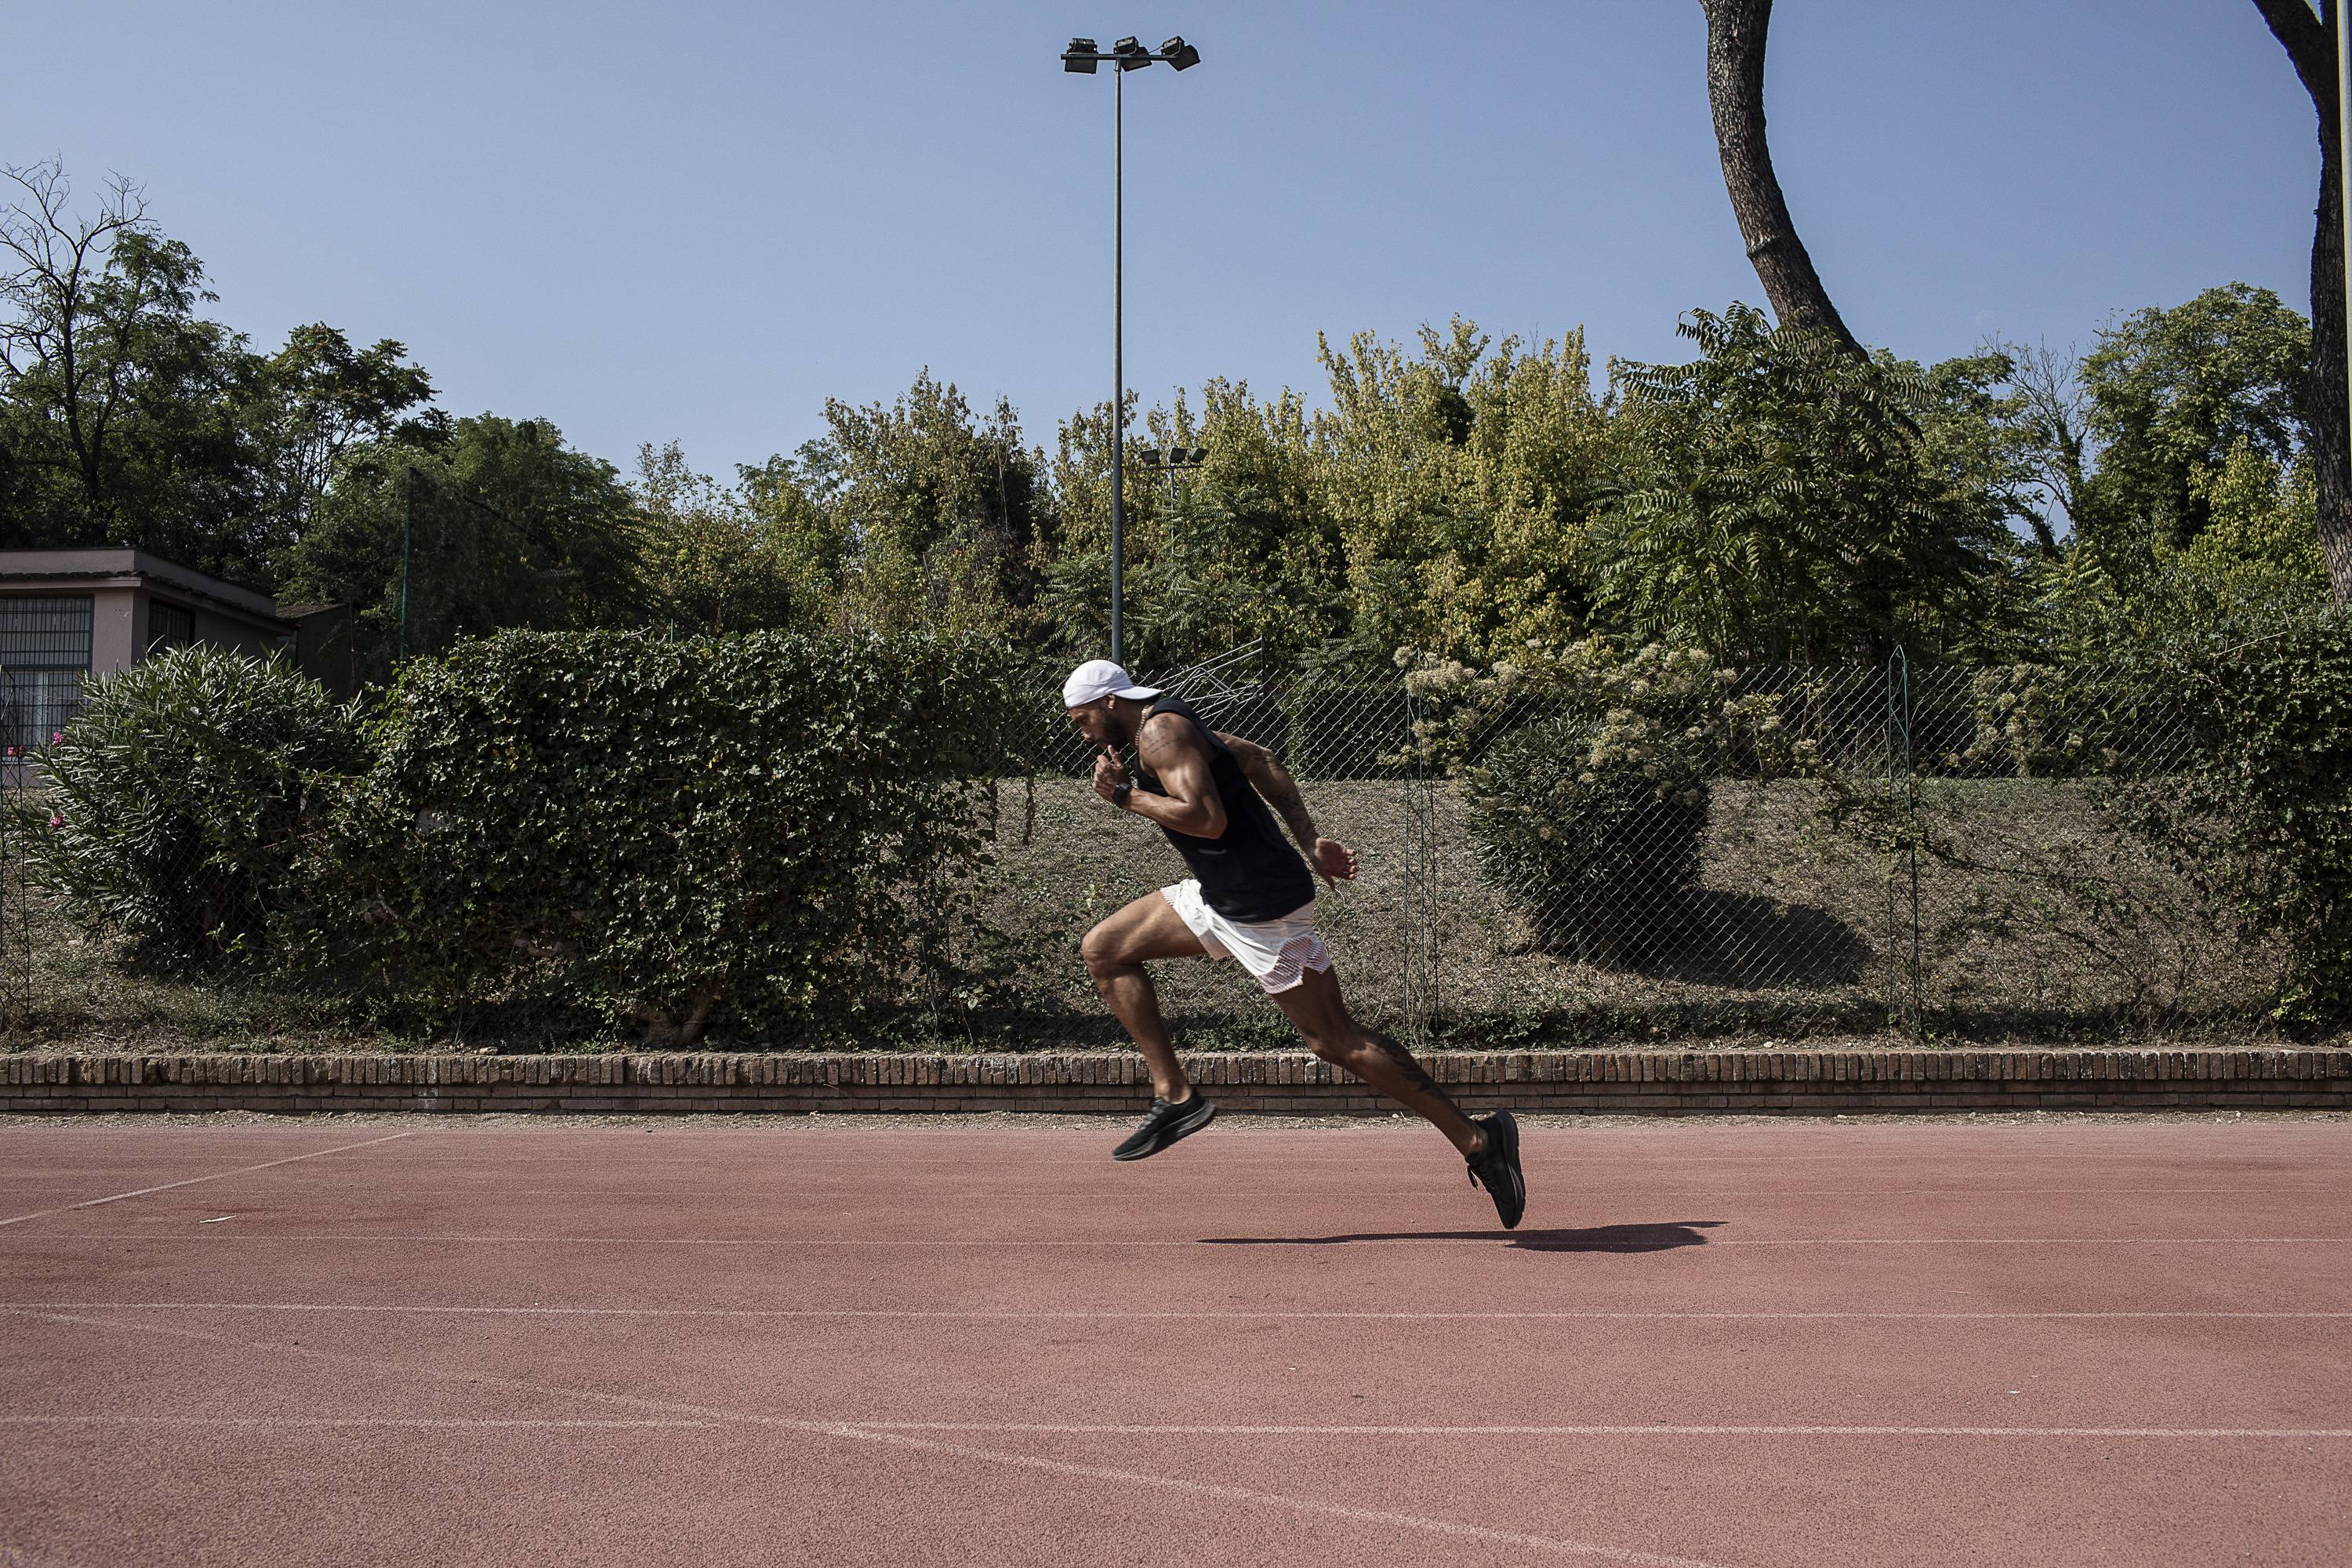 Lamont Marcell Jacobs trains at Rosi stadium in Rome. | NADIA SHIRA COHEN / THE NEW YORK TIMES